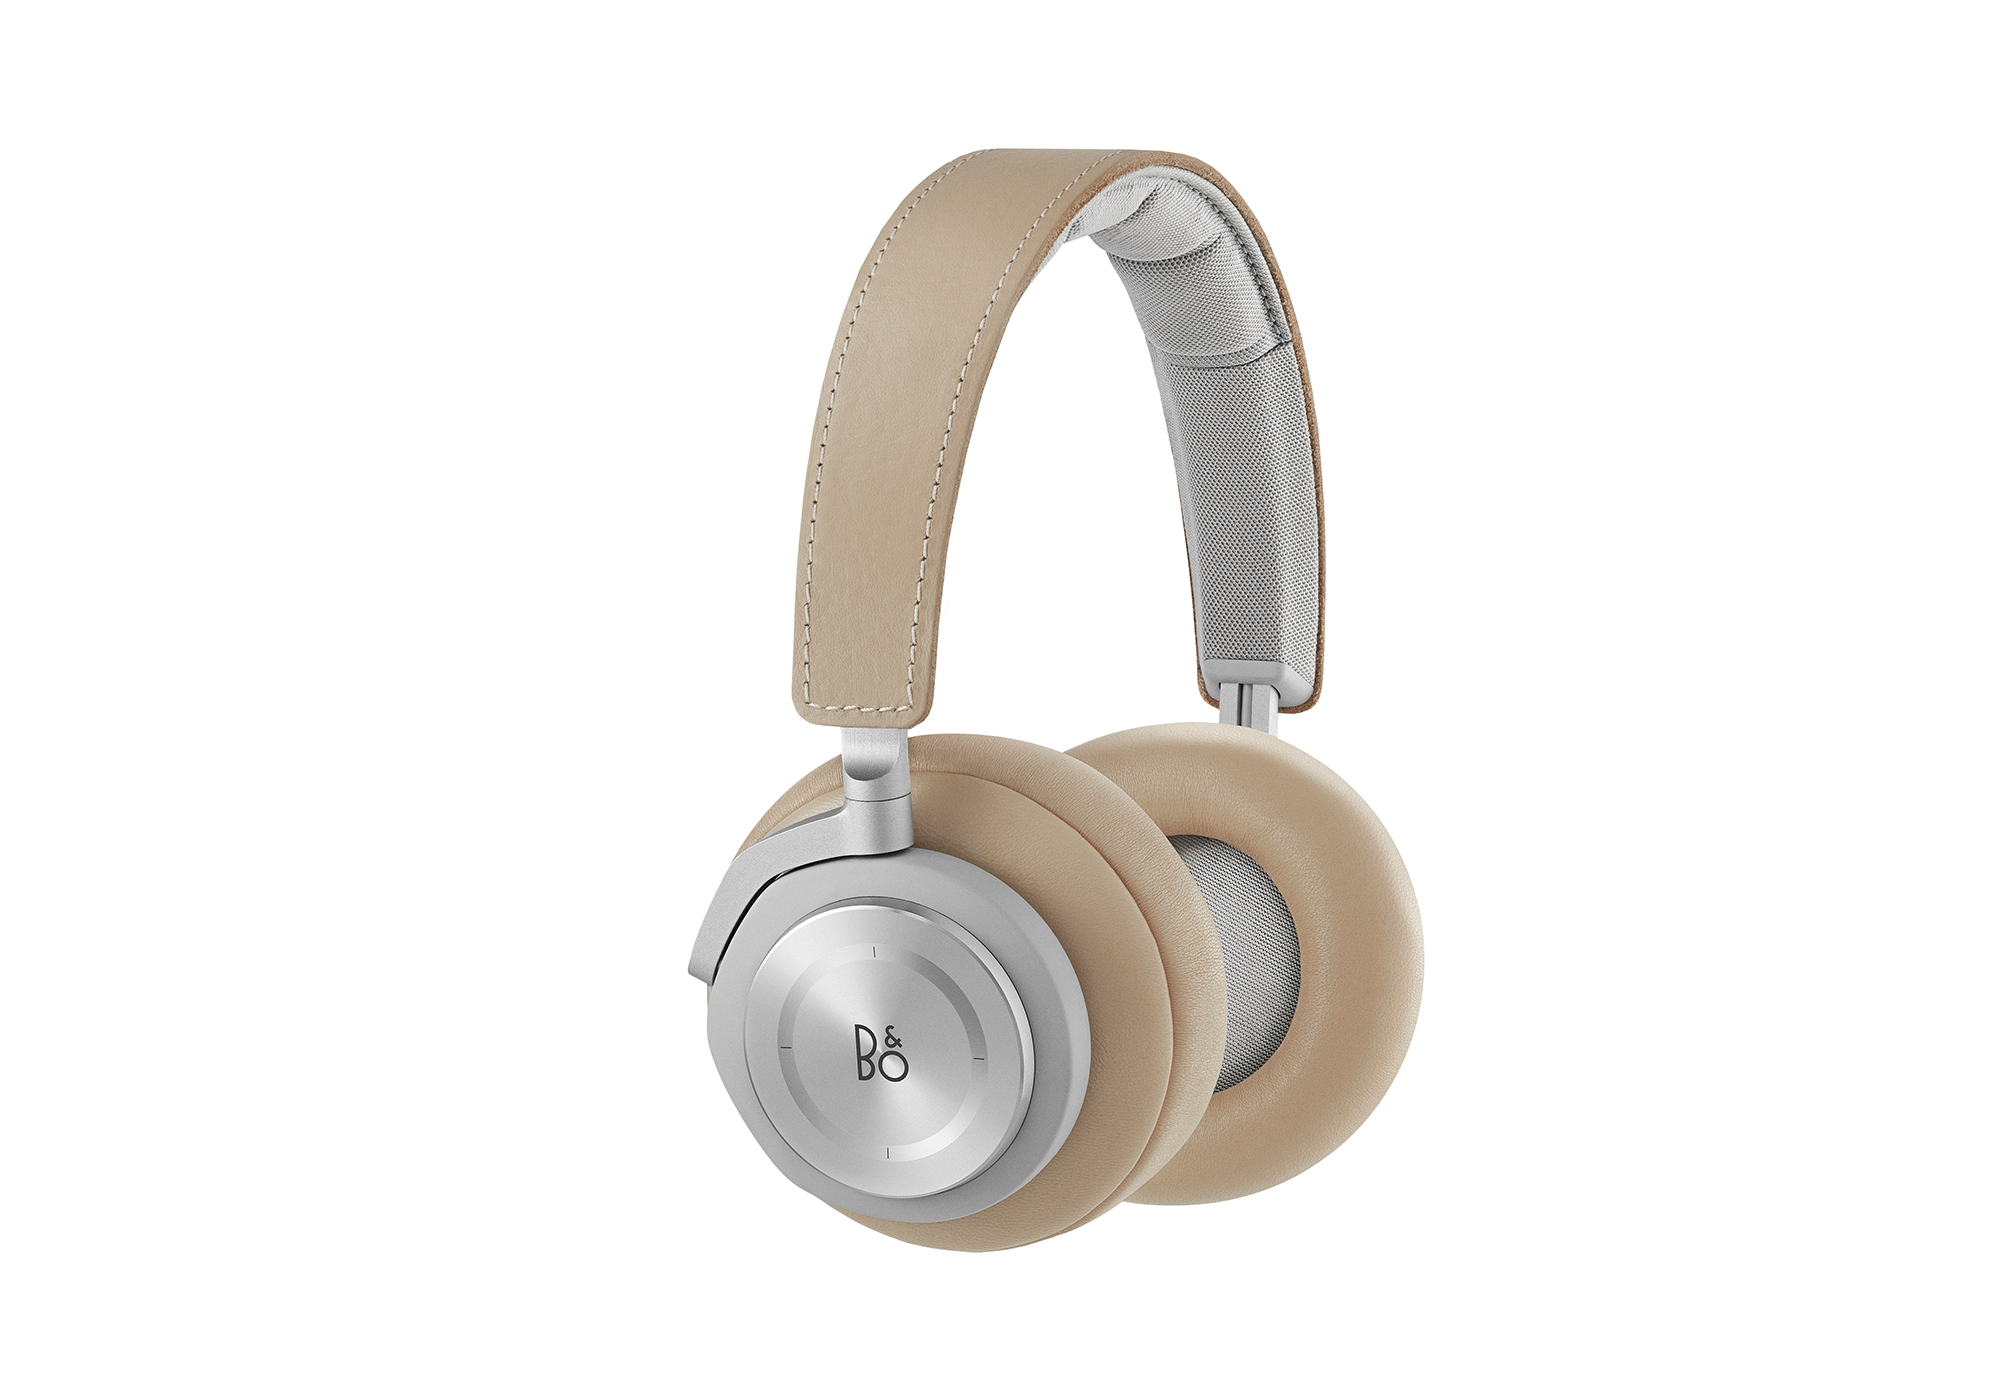 Bang & Olufsen Beoplay H7